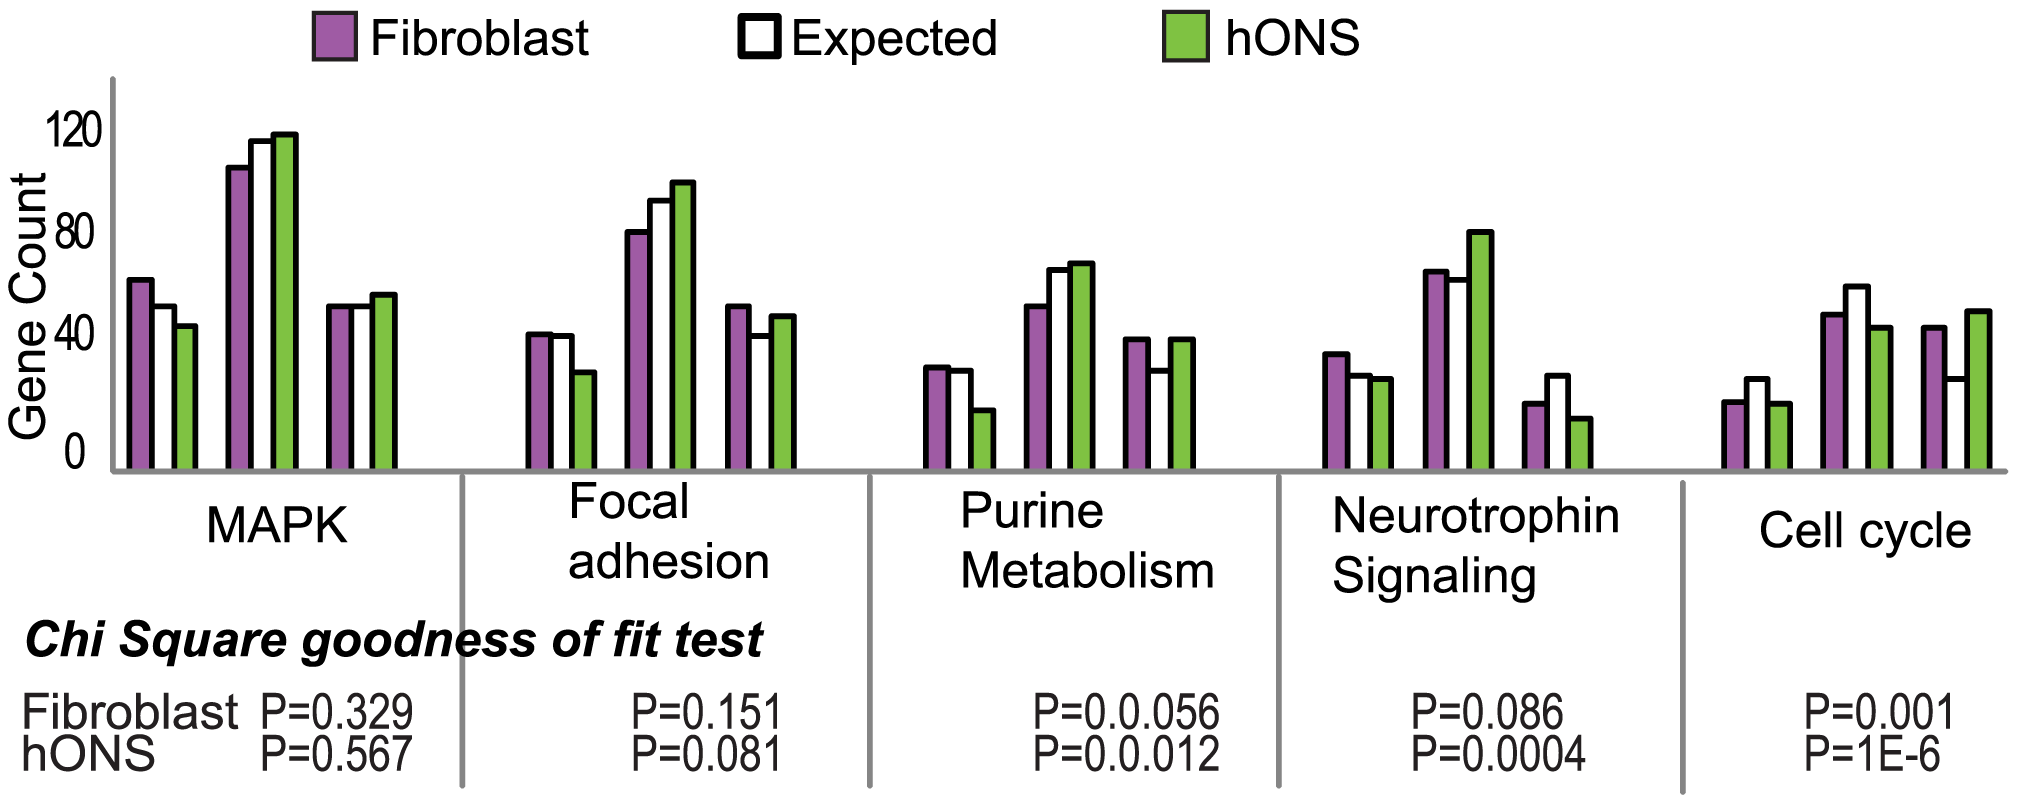 Distribution of variance patterns in the top 5 attract pathways for hONS and fibroblast cells.